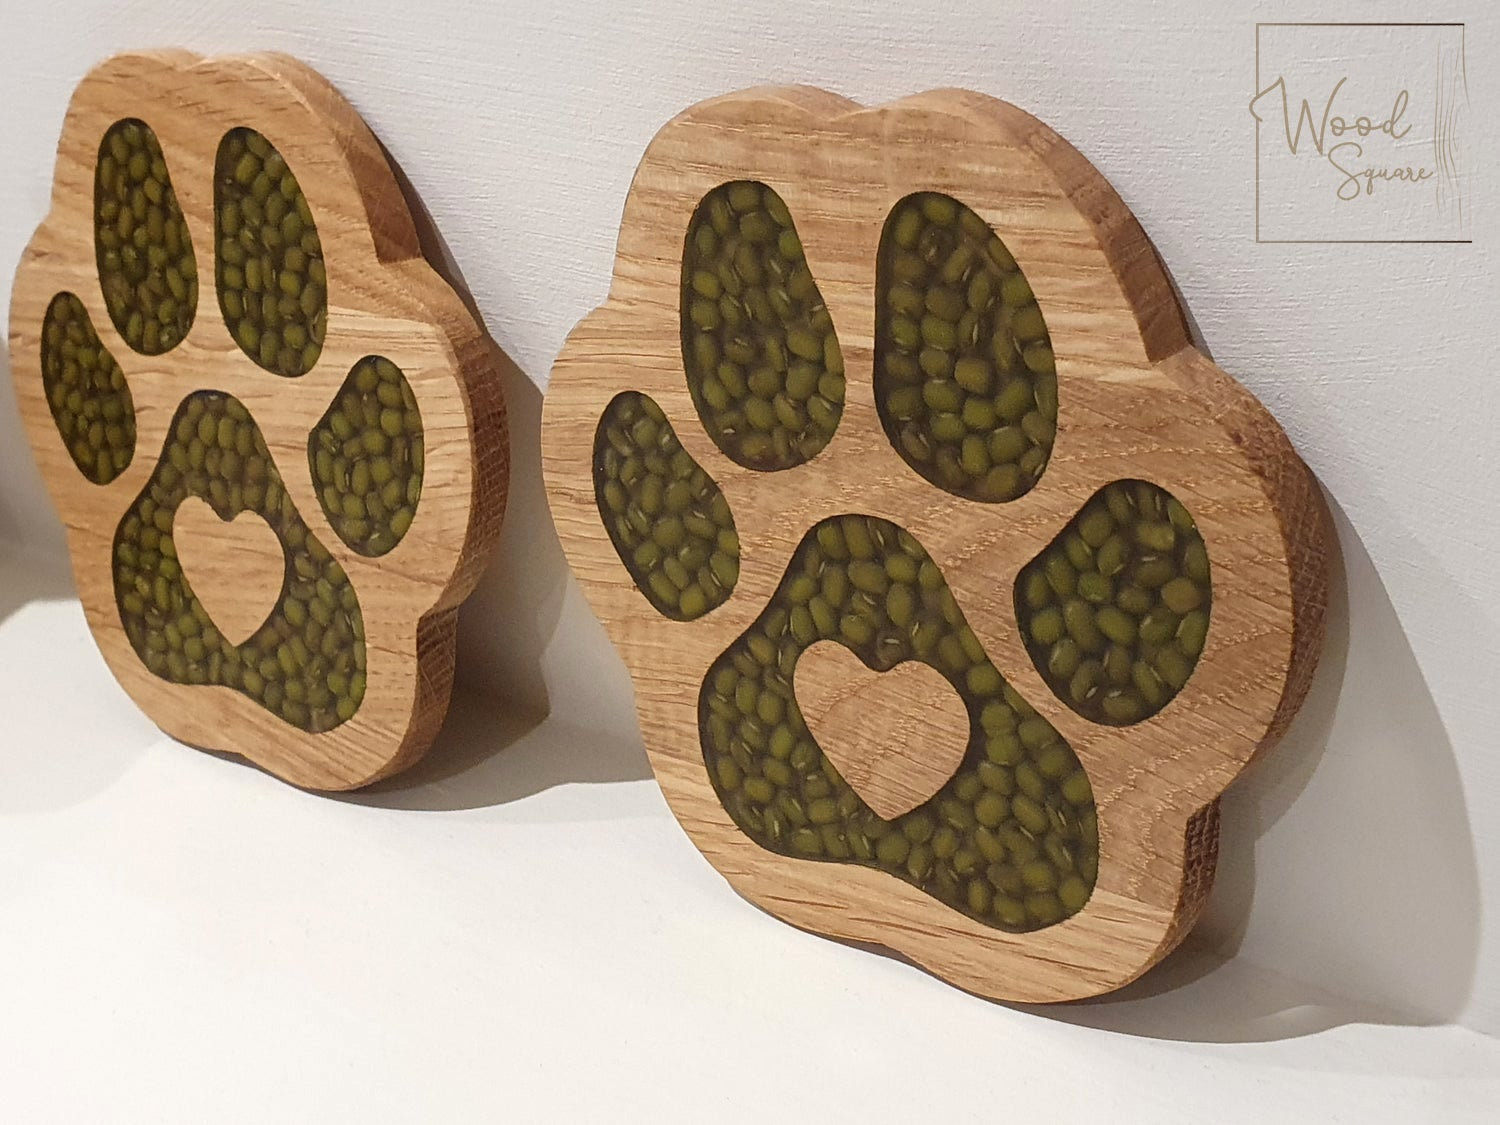 Image of Paw Print coasters with green lentils